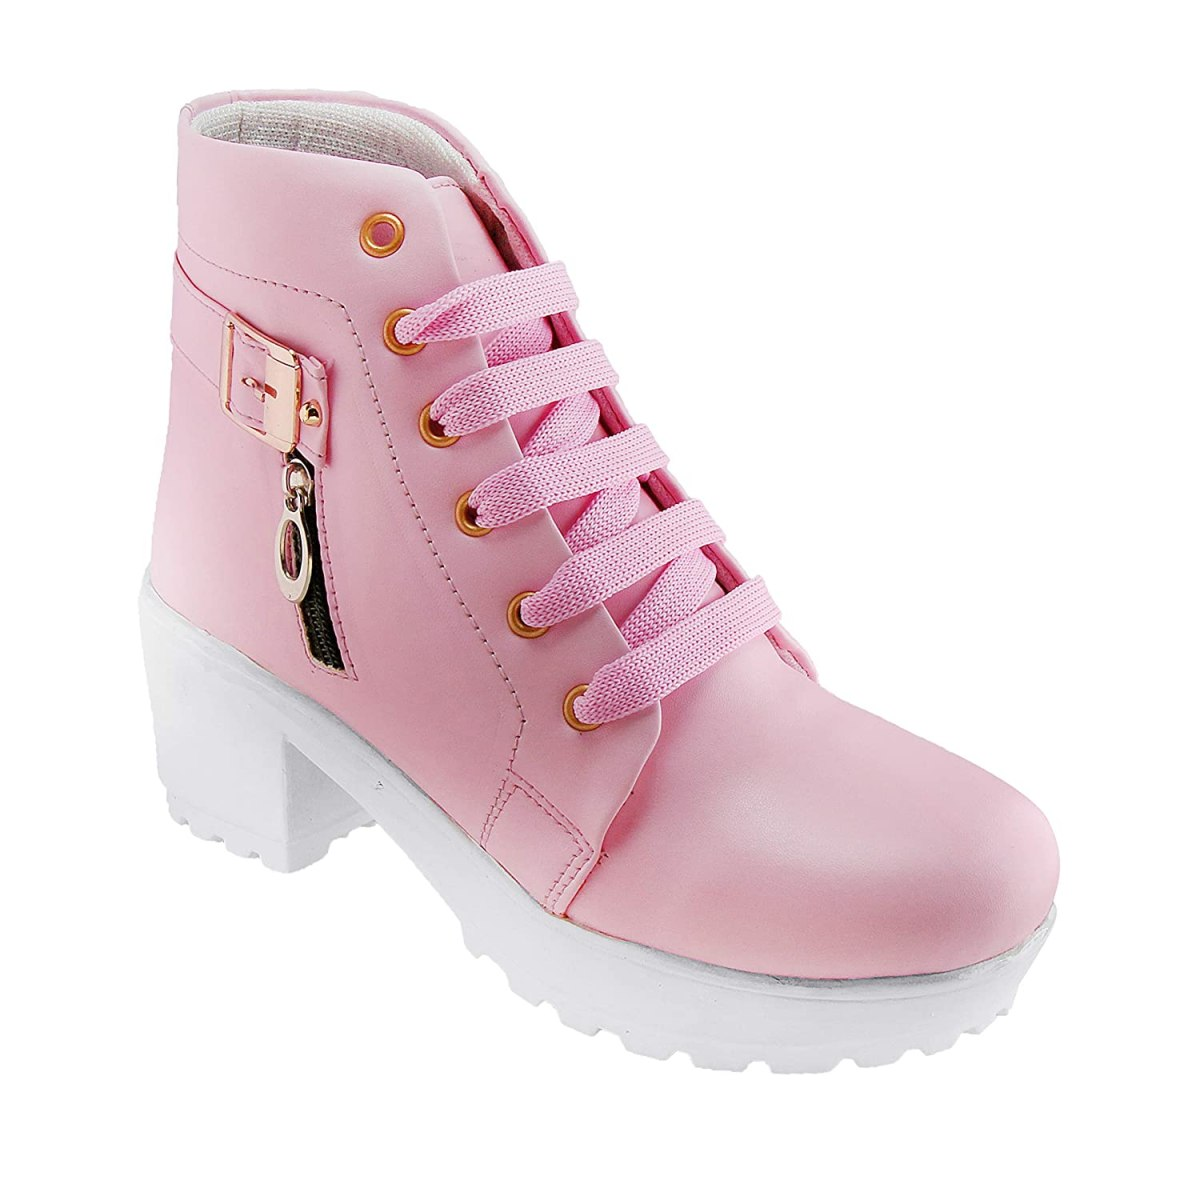 RINDAS Women's | Females | Girls Comfortable, Synthetic Leather, Boots College Casual Boots